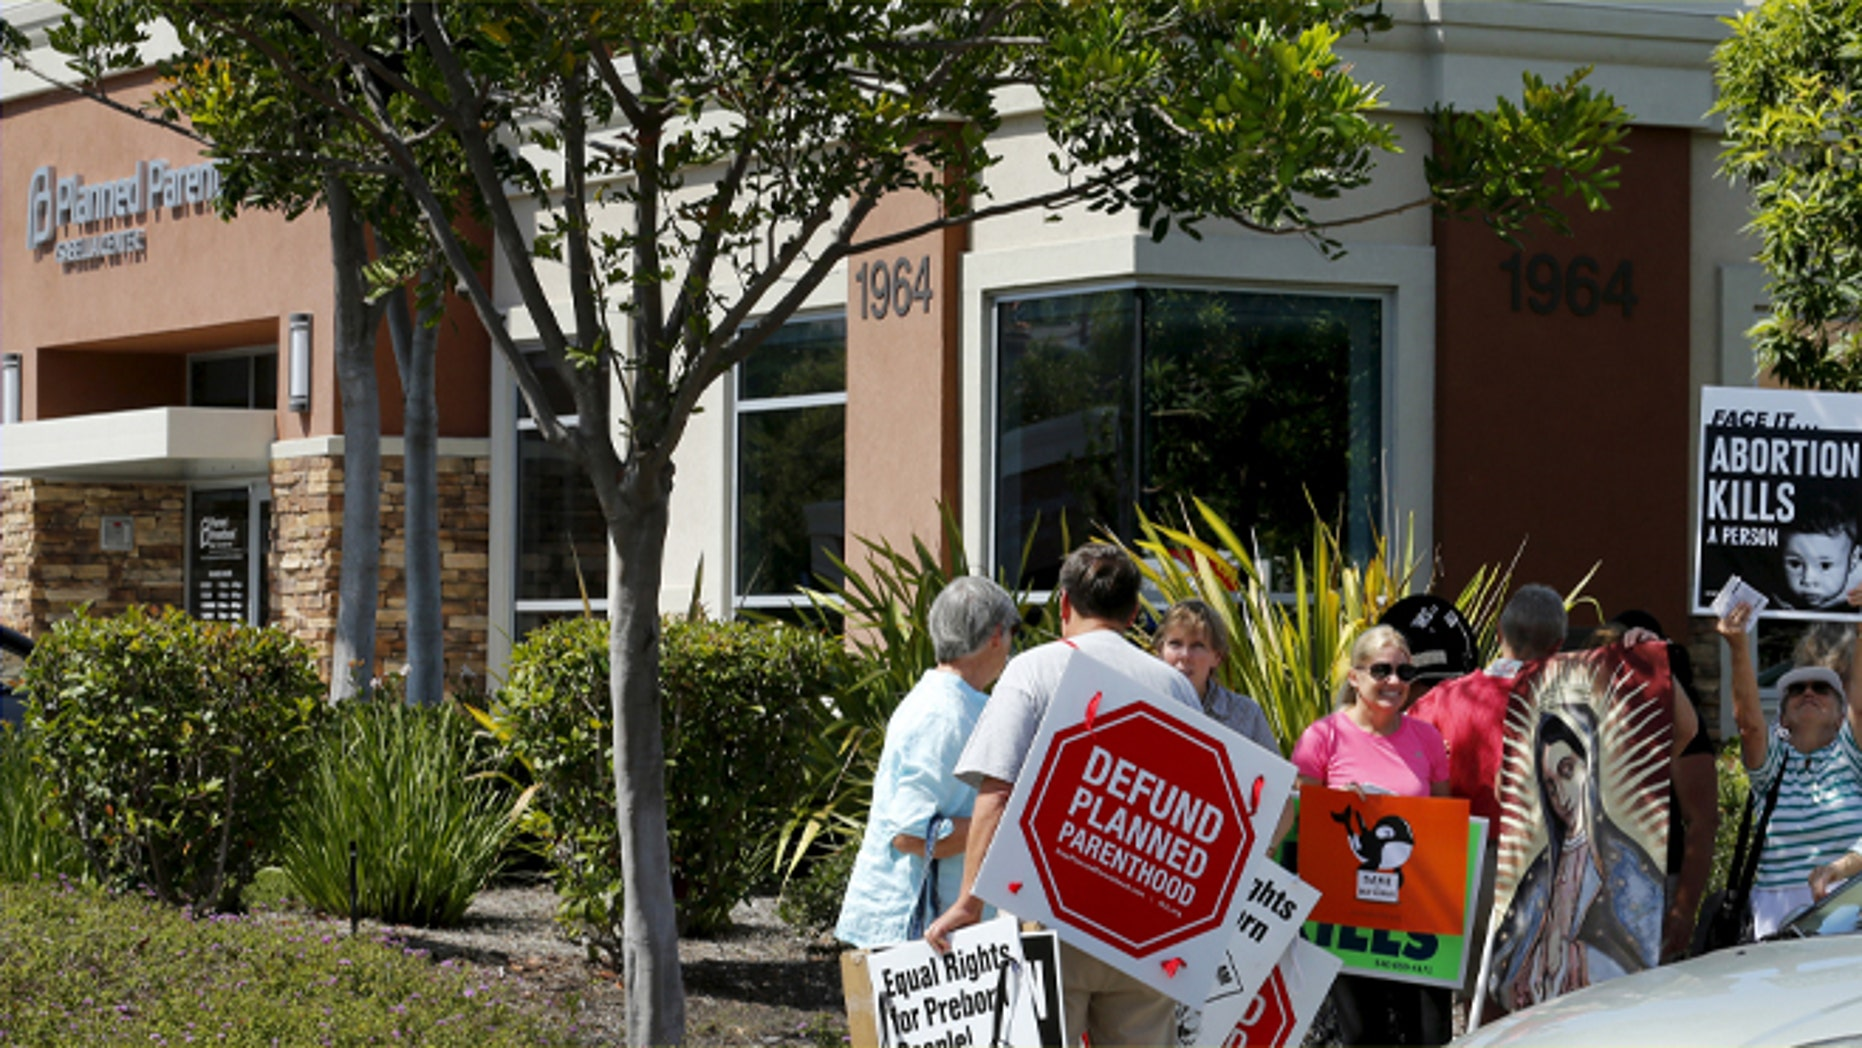 FILE: August 3, 2015: Protesters outside a Planned Parenthood clinic in Vista, California.